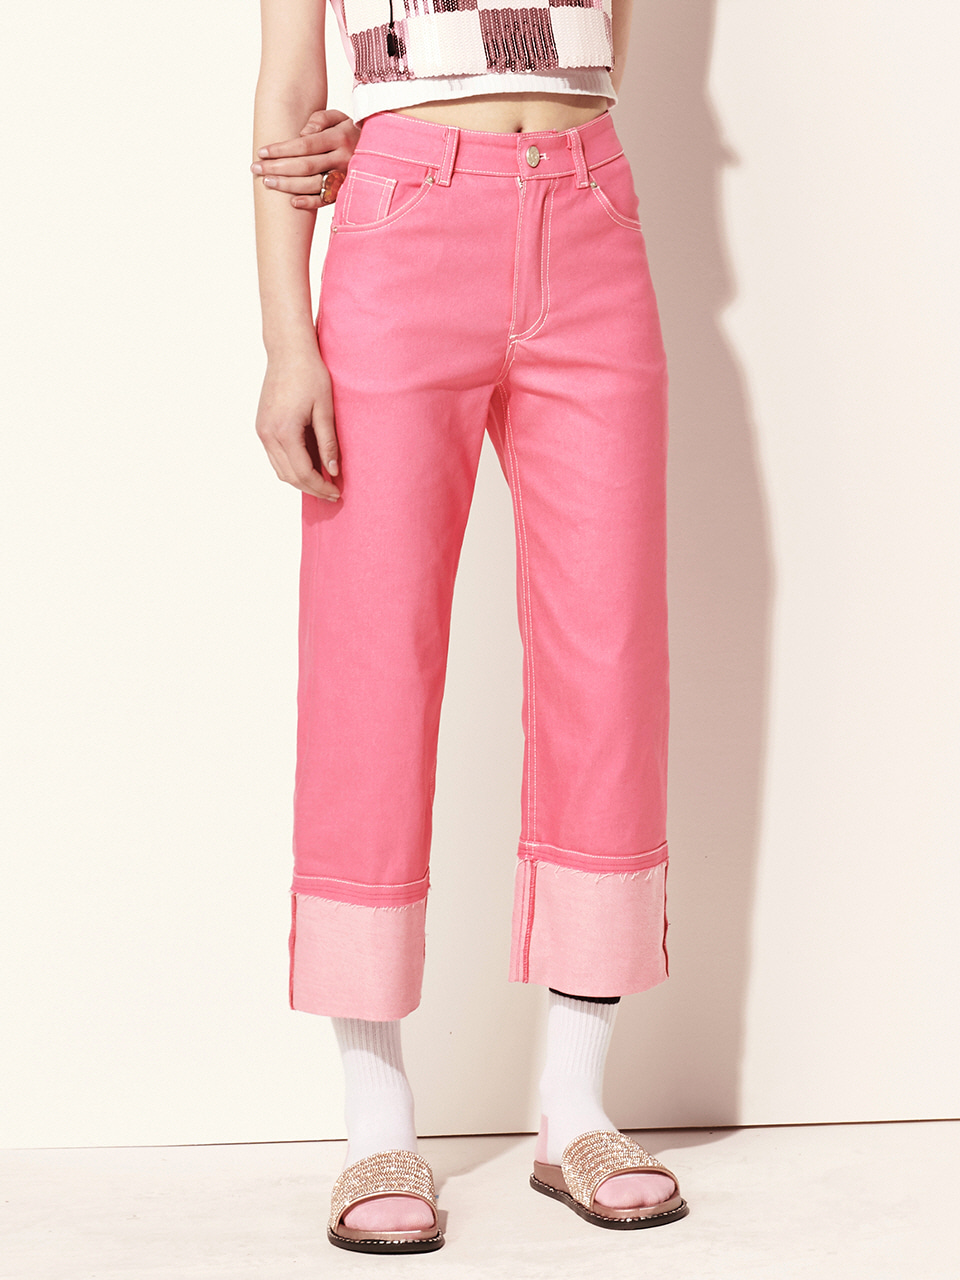 VVV PINK ROLL UP PANTS